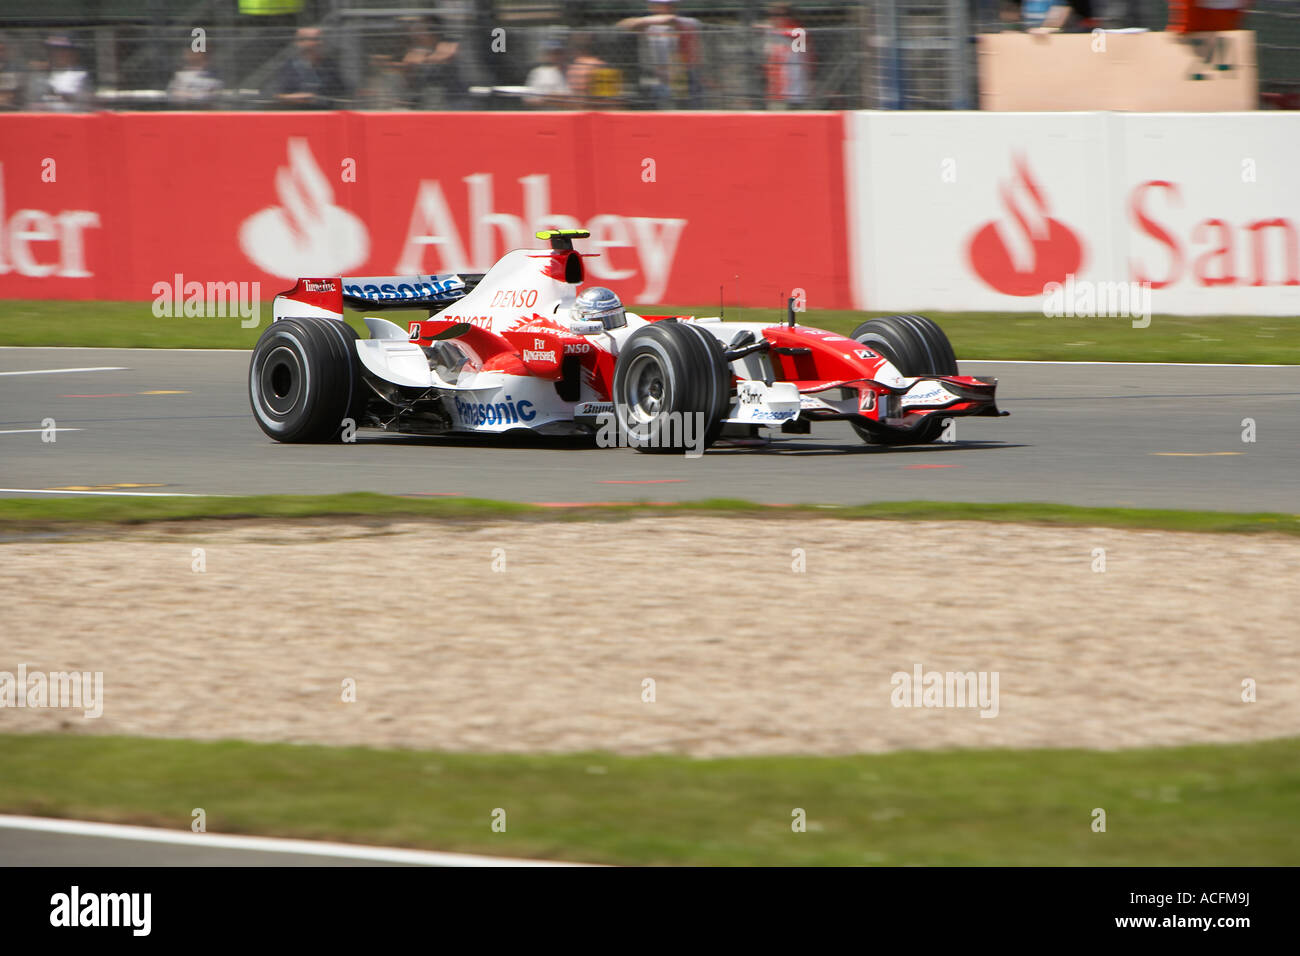 Jarno Trulli driving his Panasonic Toyota at the British Grand Prix 2007 Sliverstone - Stock Image